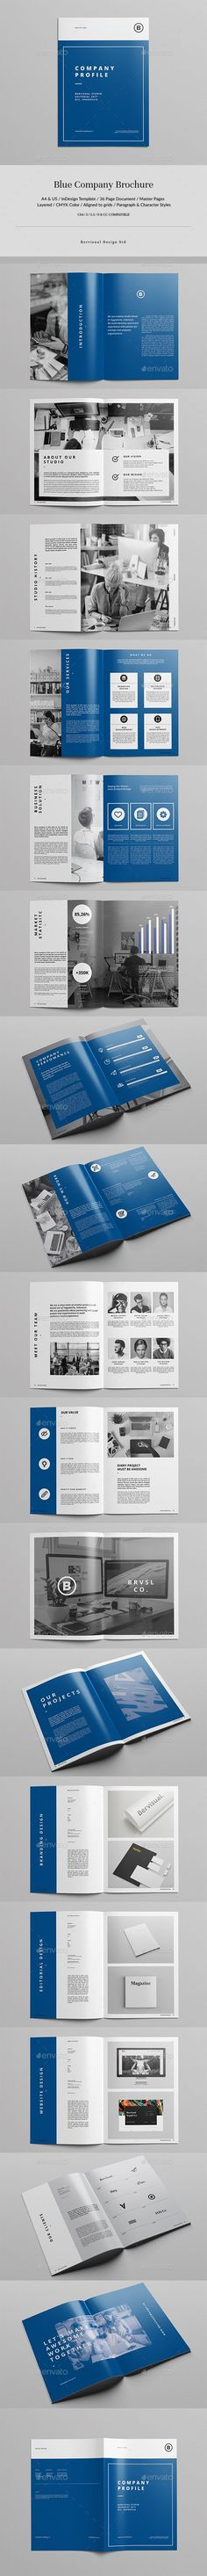 Blue Company Brochure Template InDesign INDD - 36 Pages A4 & US Letter Size